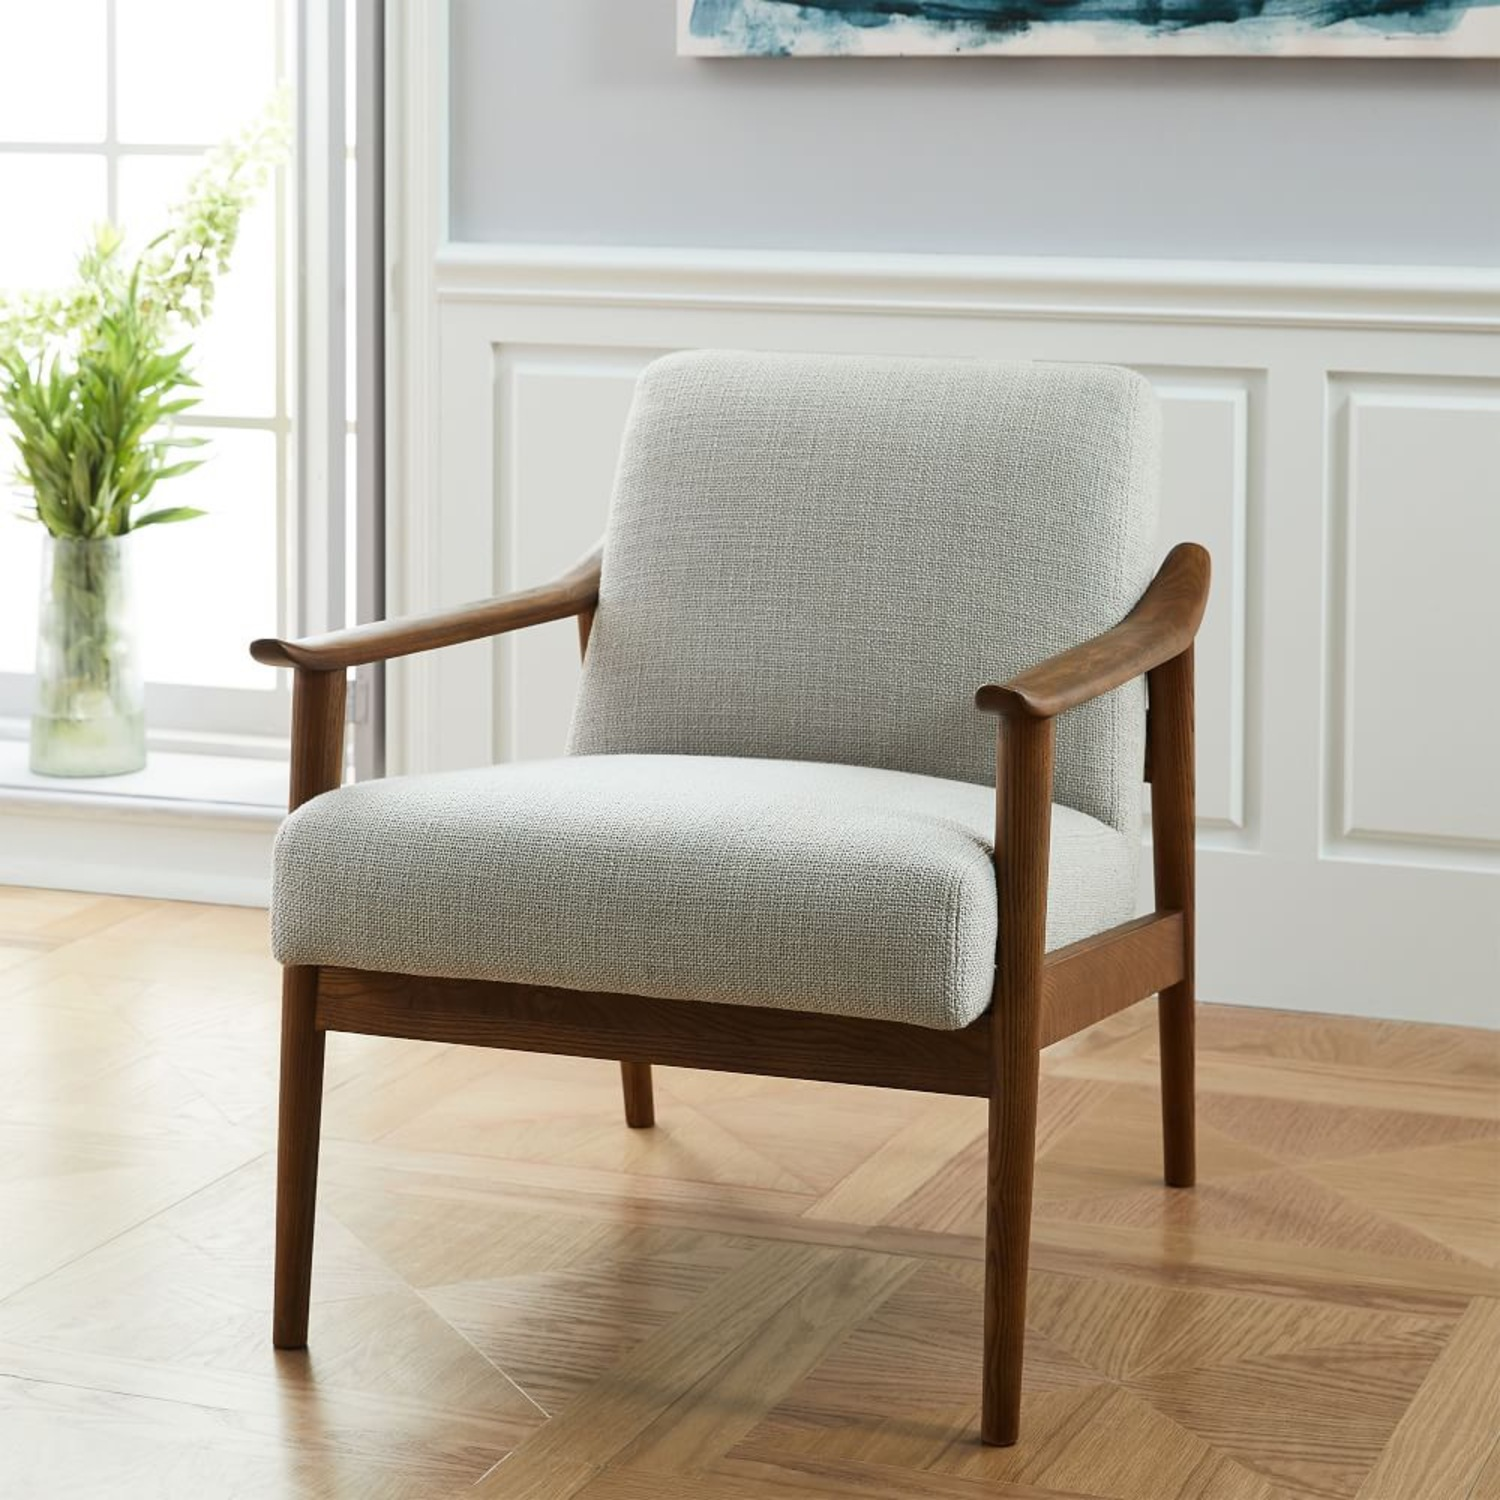 West Elm Mid-Century Upholstered Chair - image-1